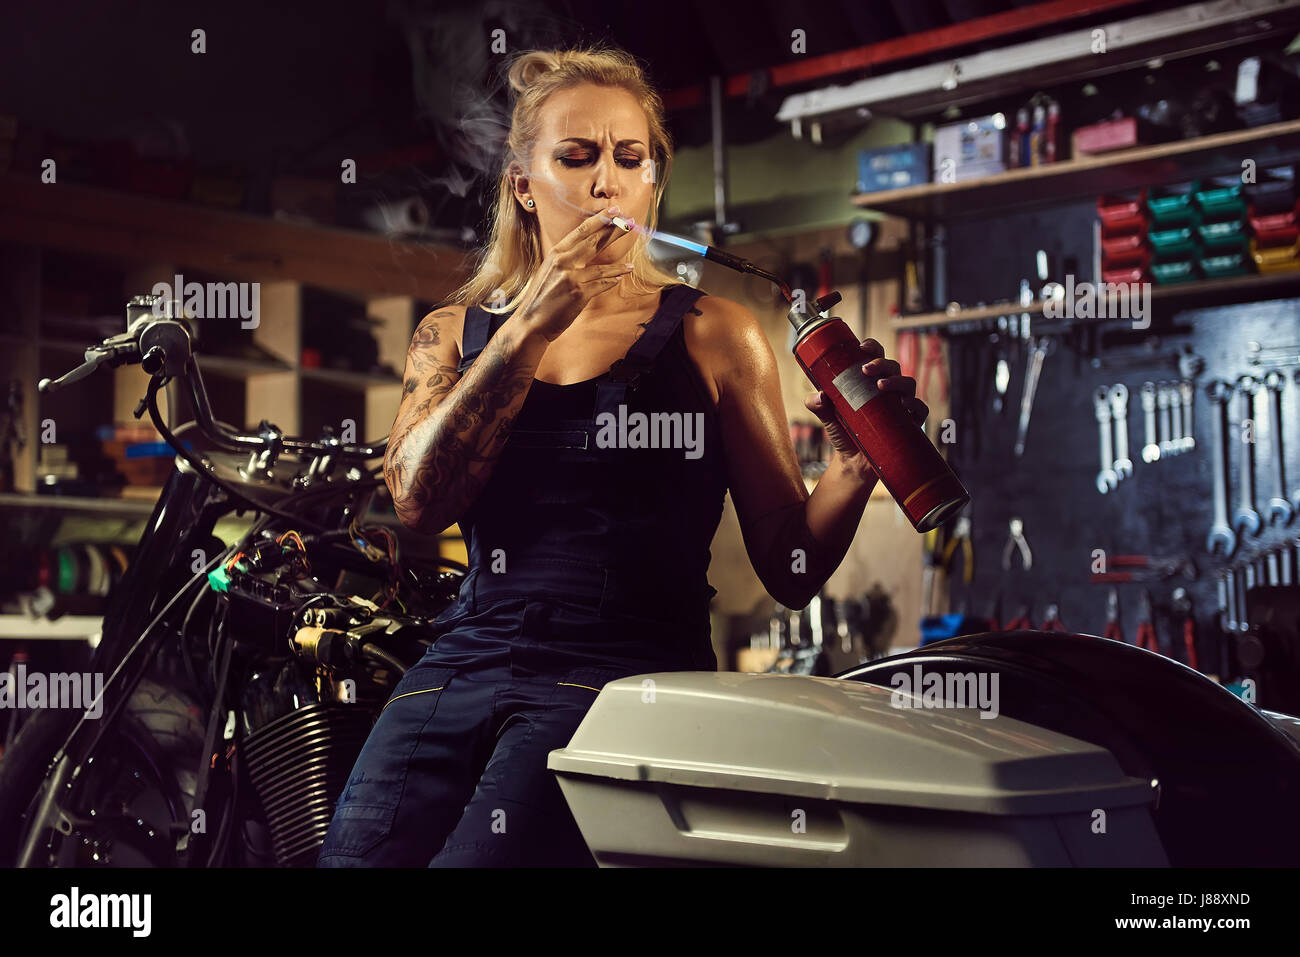 Woman mechanic lights up a cigarette with a gas burner in a motorcycle workshop - Stock Image